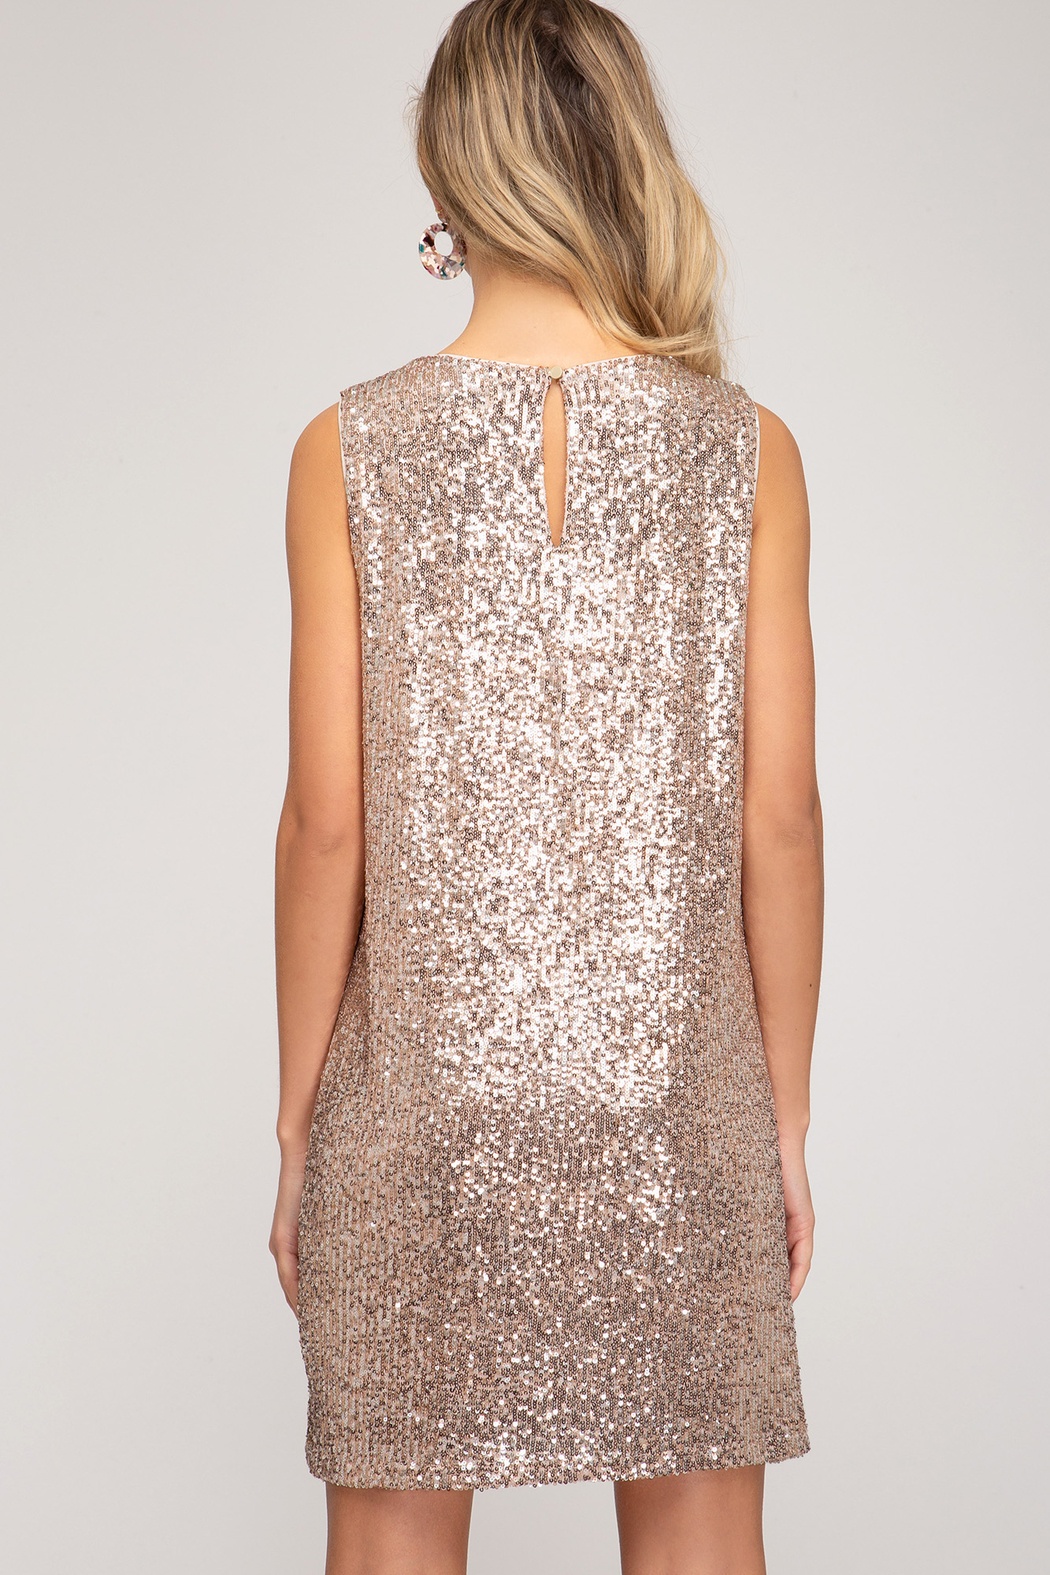 She & Sky  Shimmer Sequin Shift - Front Full Image